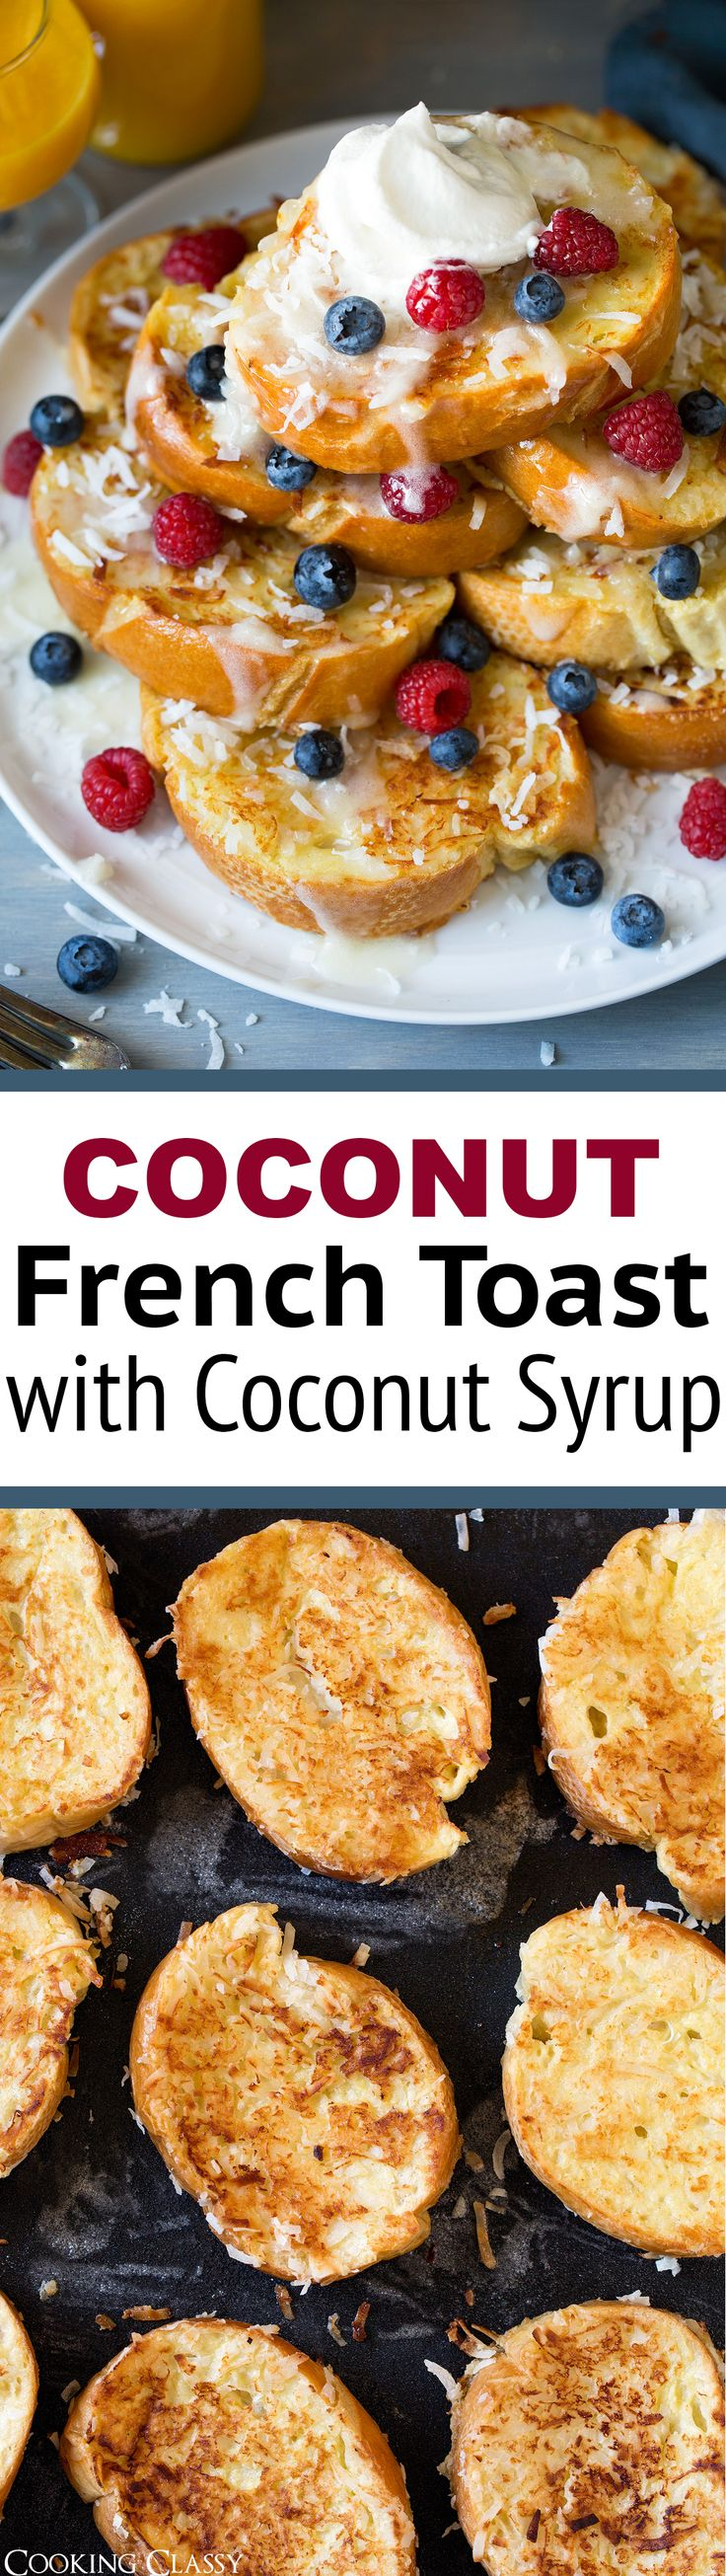 Coconut French Toast with Coconut Syrup - Cooking Classy (Baking Treats French Toast)